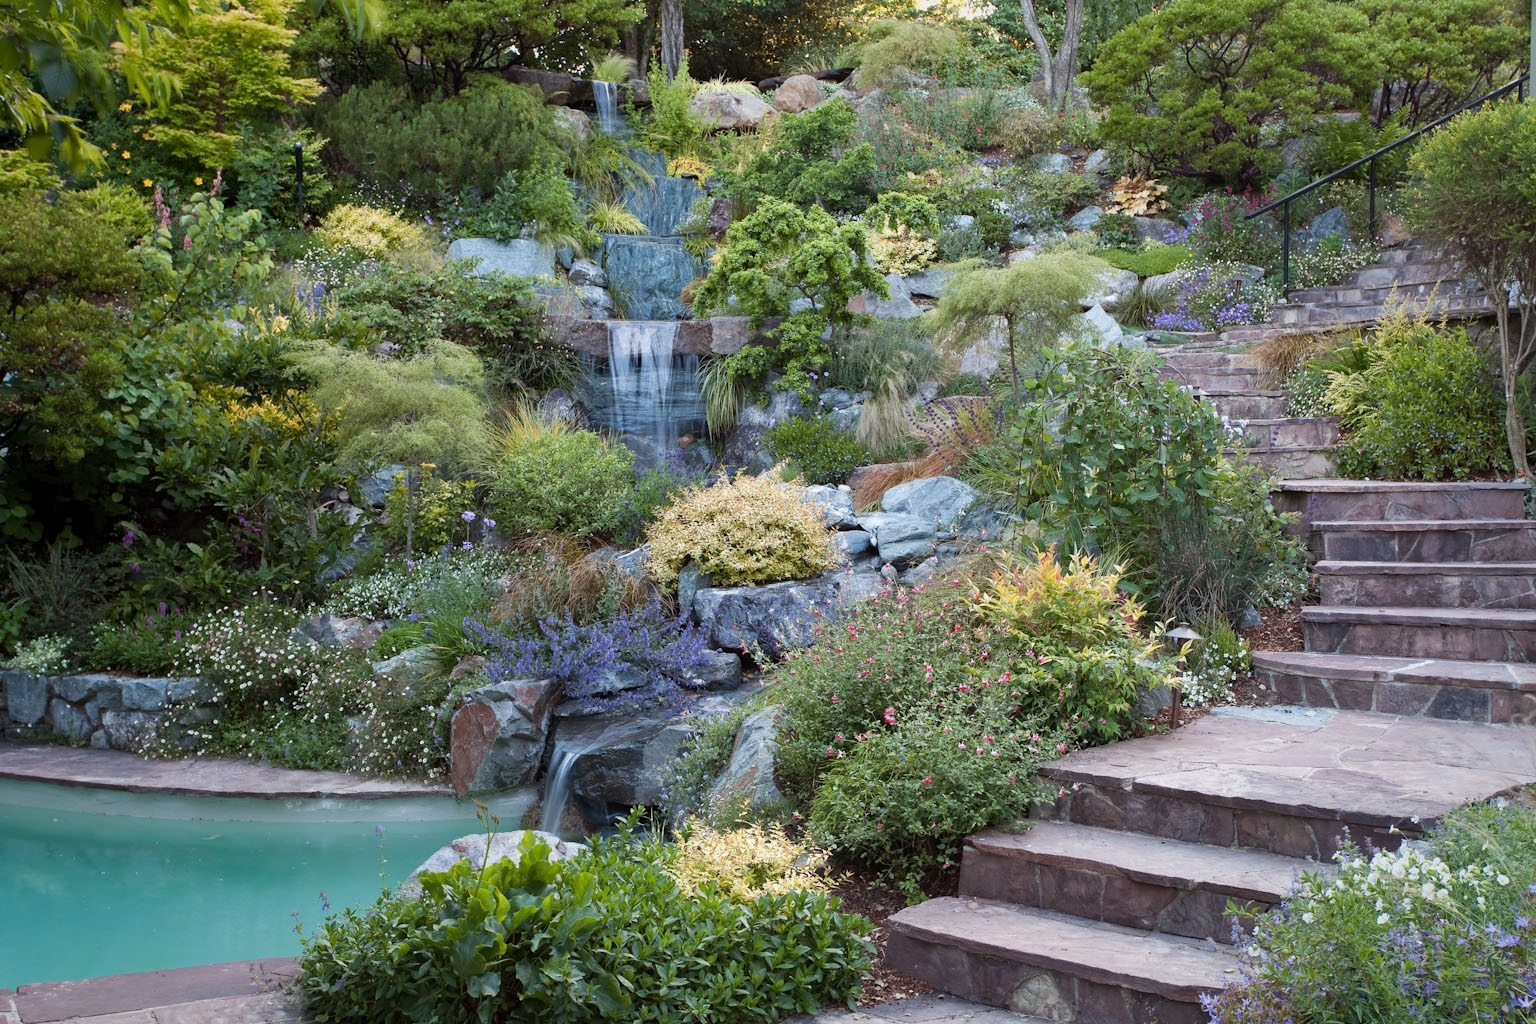 Cut stone path and steps downhillside garden with waterfalls into swimming pool